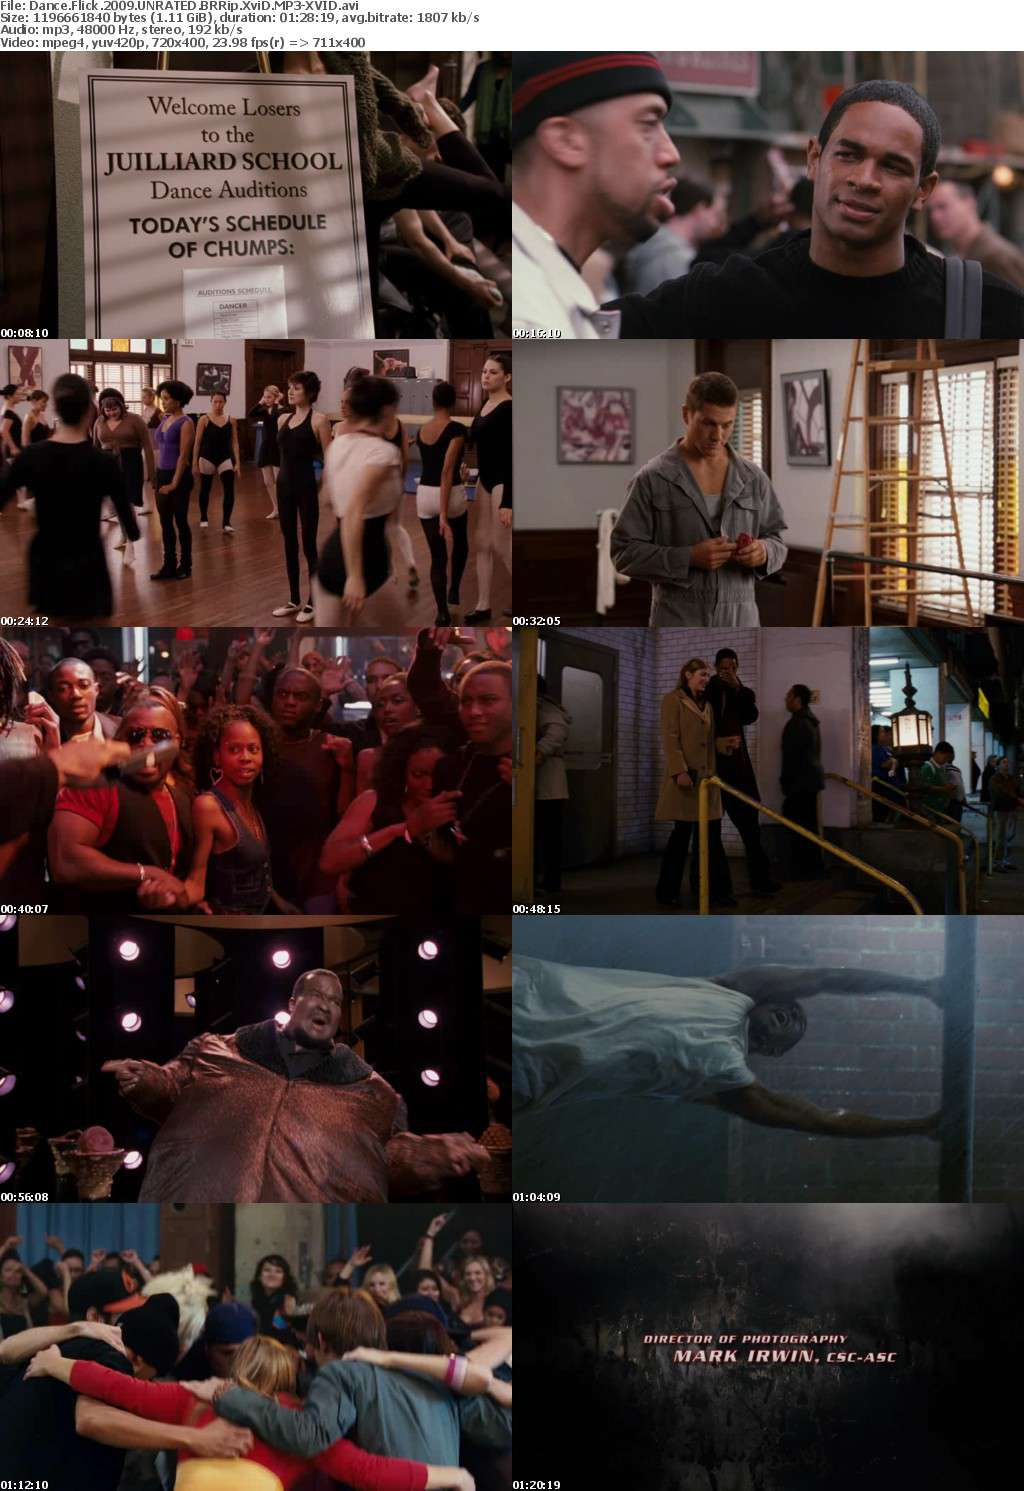 Dance Flick 2009 UNRATED BRRip XviD MP3-XVID